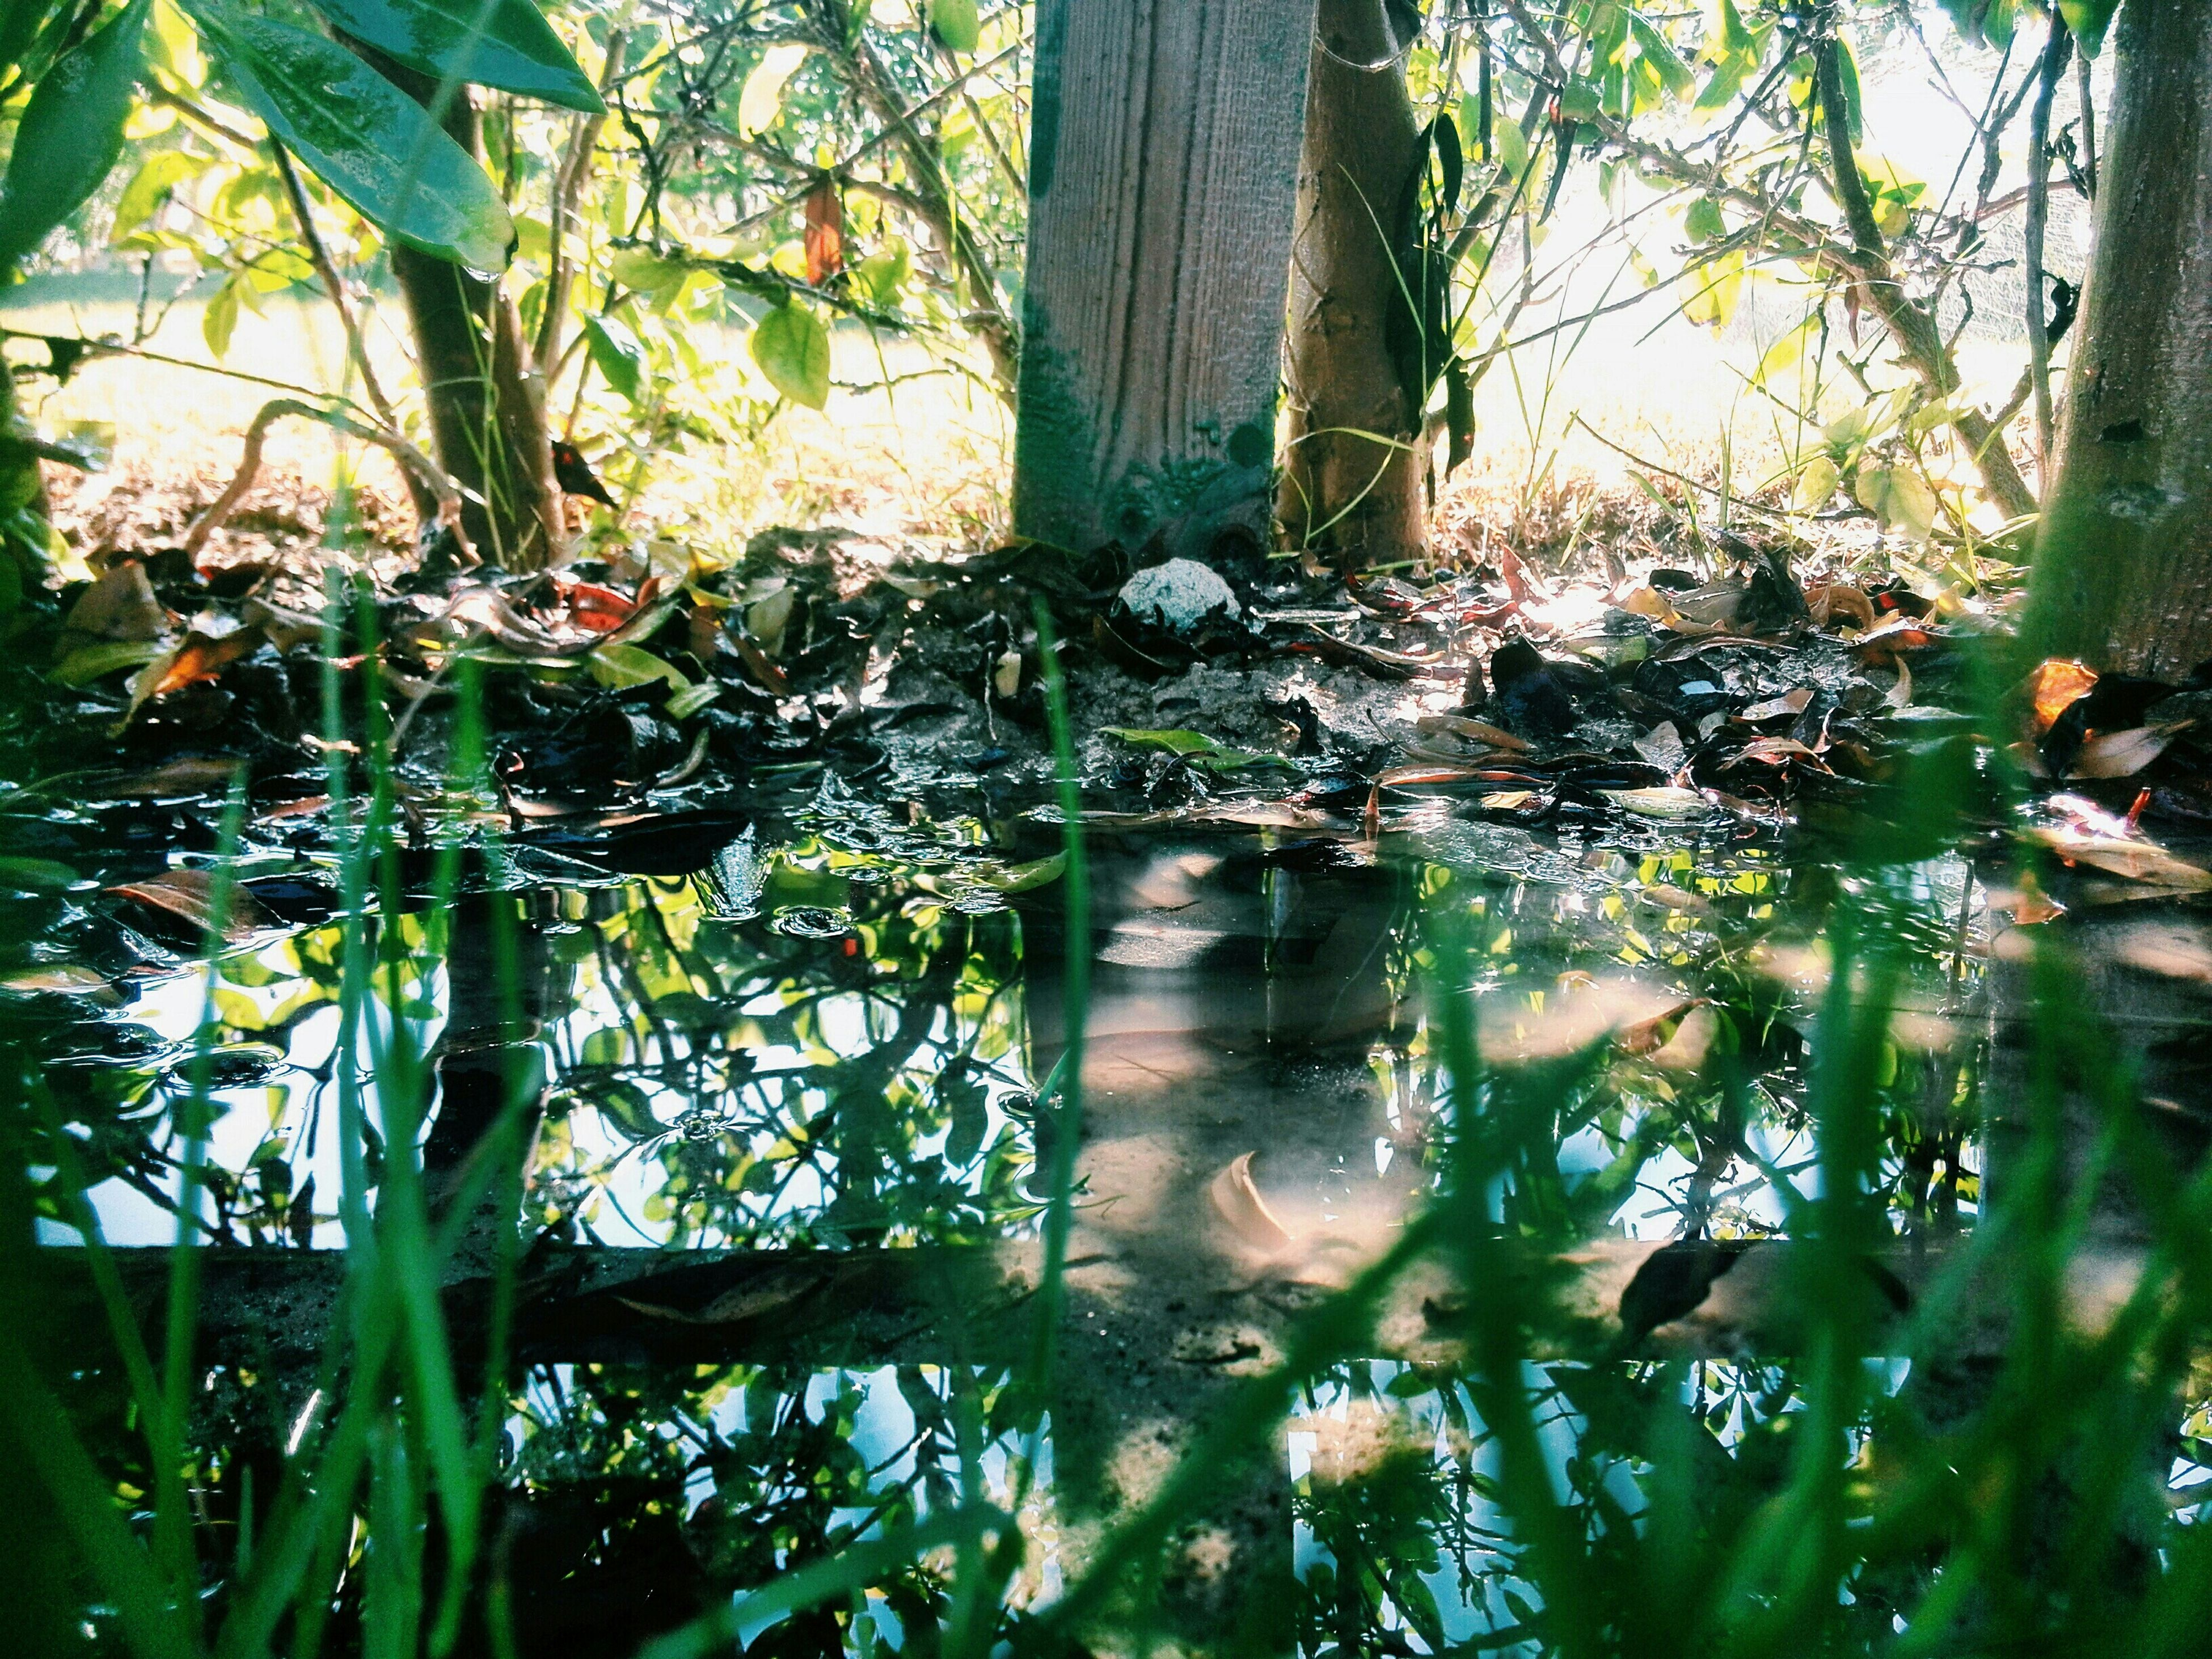 water, tree, growth, tree trunk, tranquility, reflection, forest, leaf, nature, plant, green color, lake, beauty in nature, branch, tranquil scene, pond, day, scenics, outdoors, grass